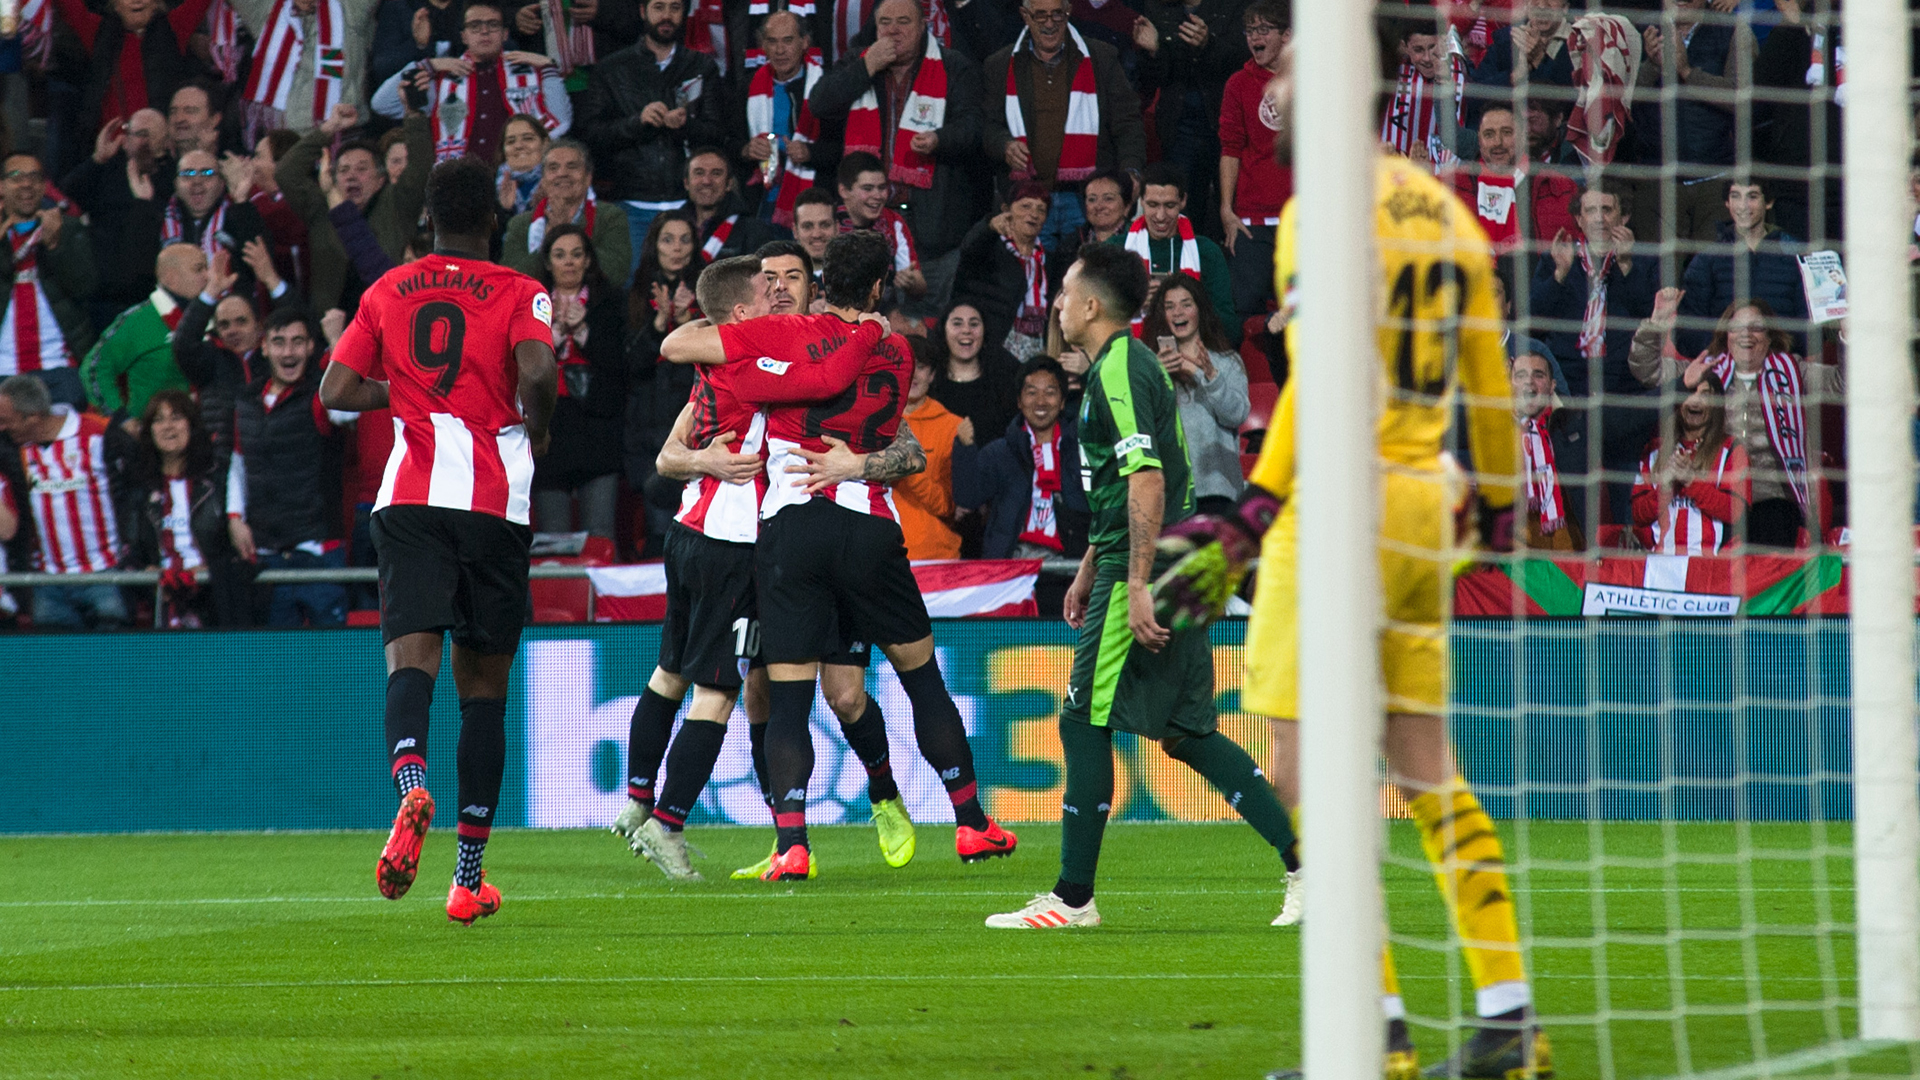 Athletic Club 1 SD Eibar 0